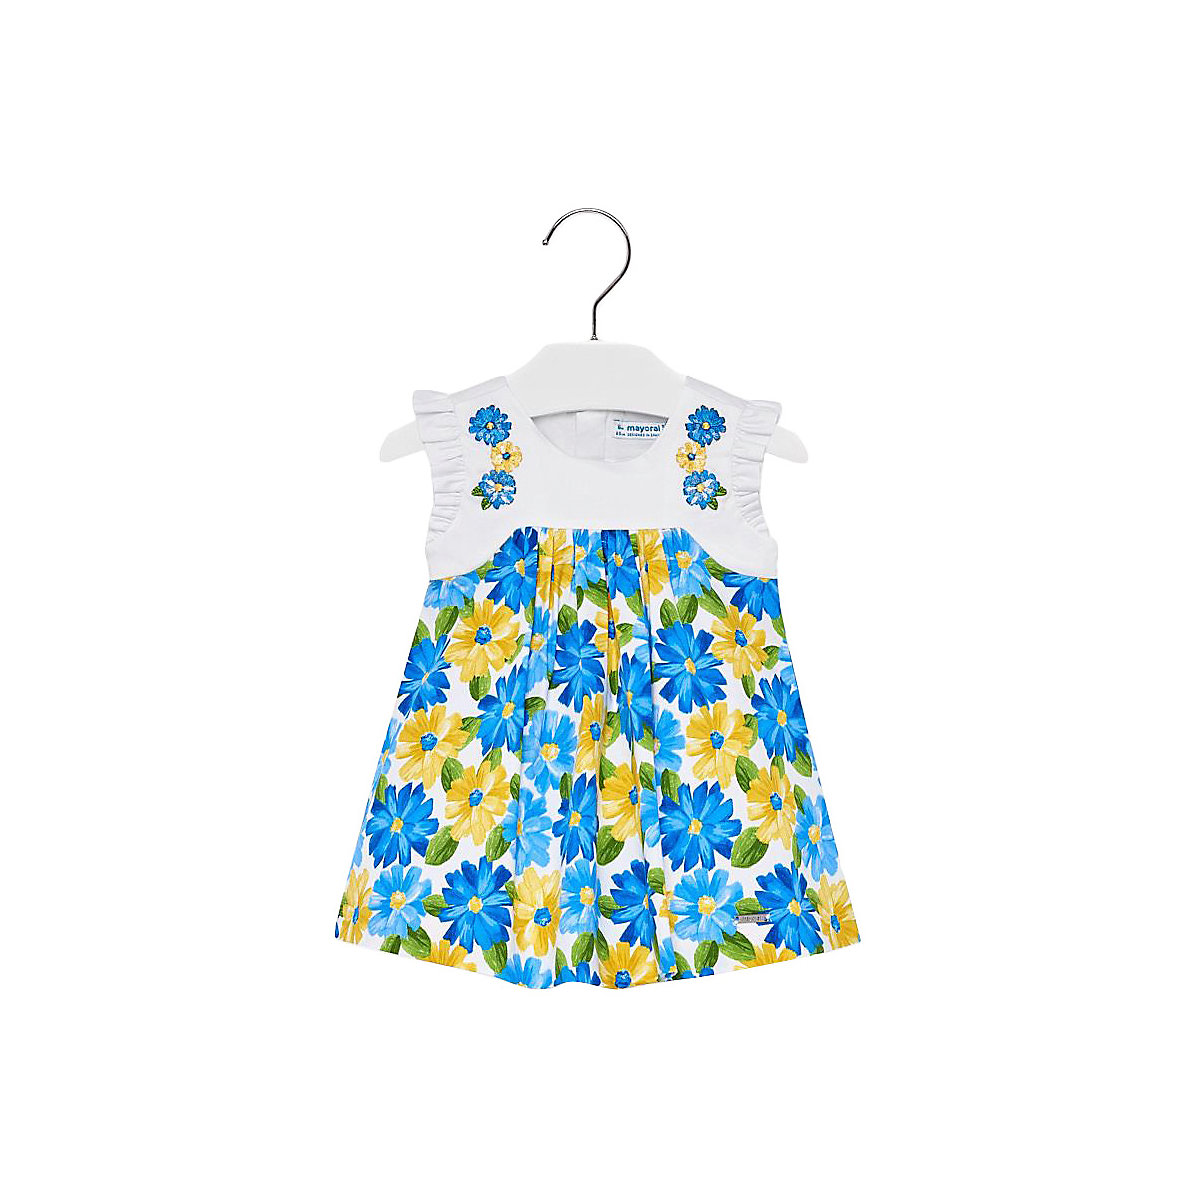 MAYORAL Dresses 10693298 Girl Children fitted pleated skirt Blue Cotton Casual Floral Knee-Length Short Sleeve